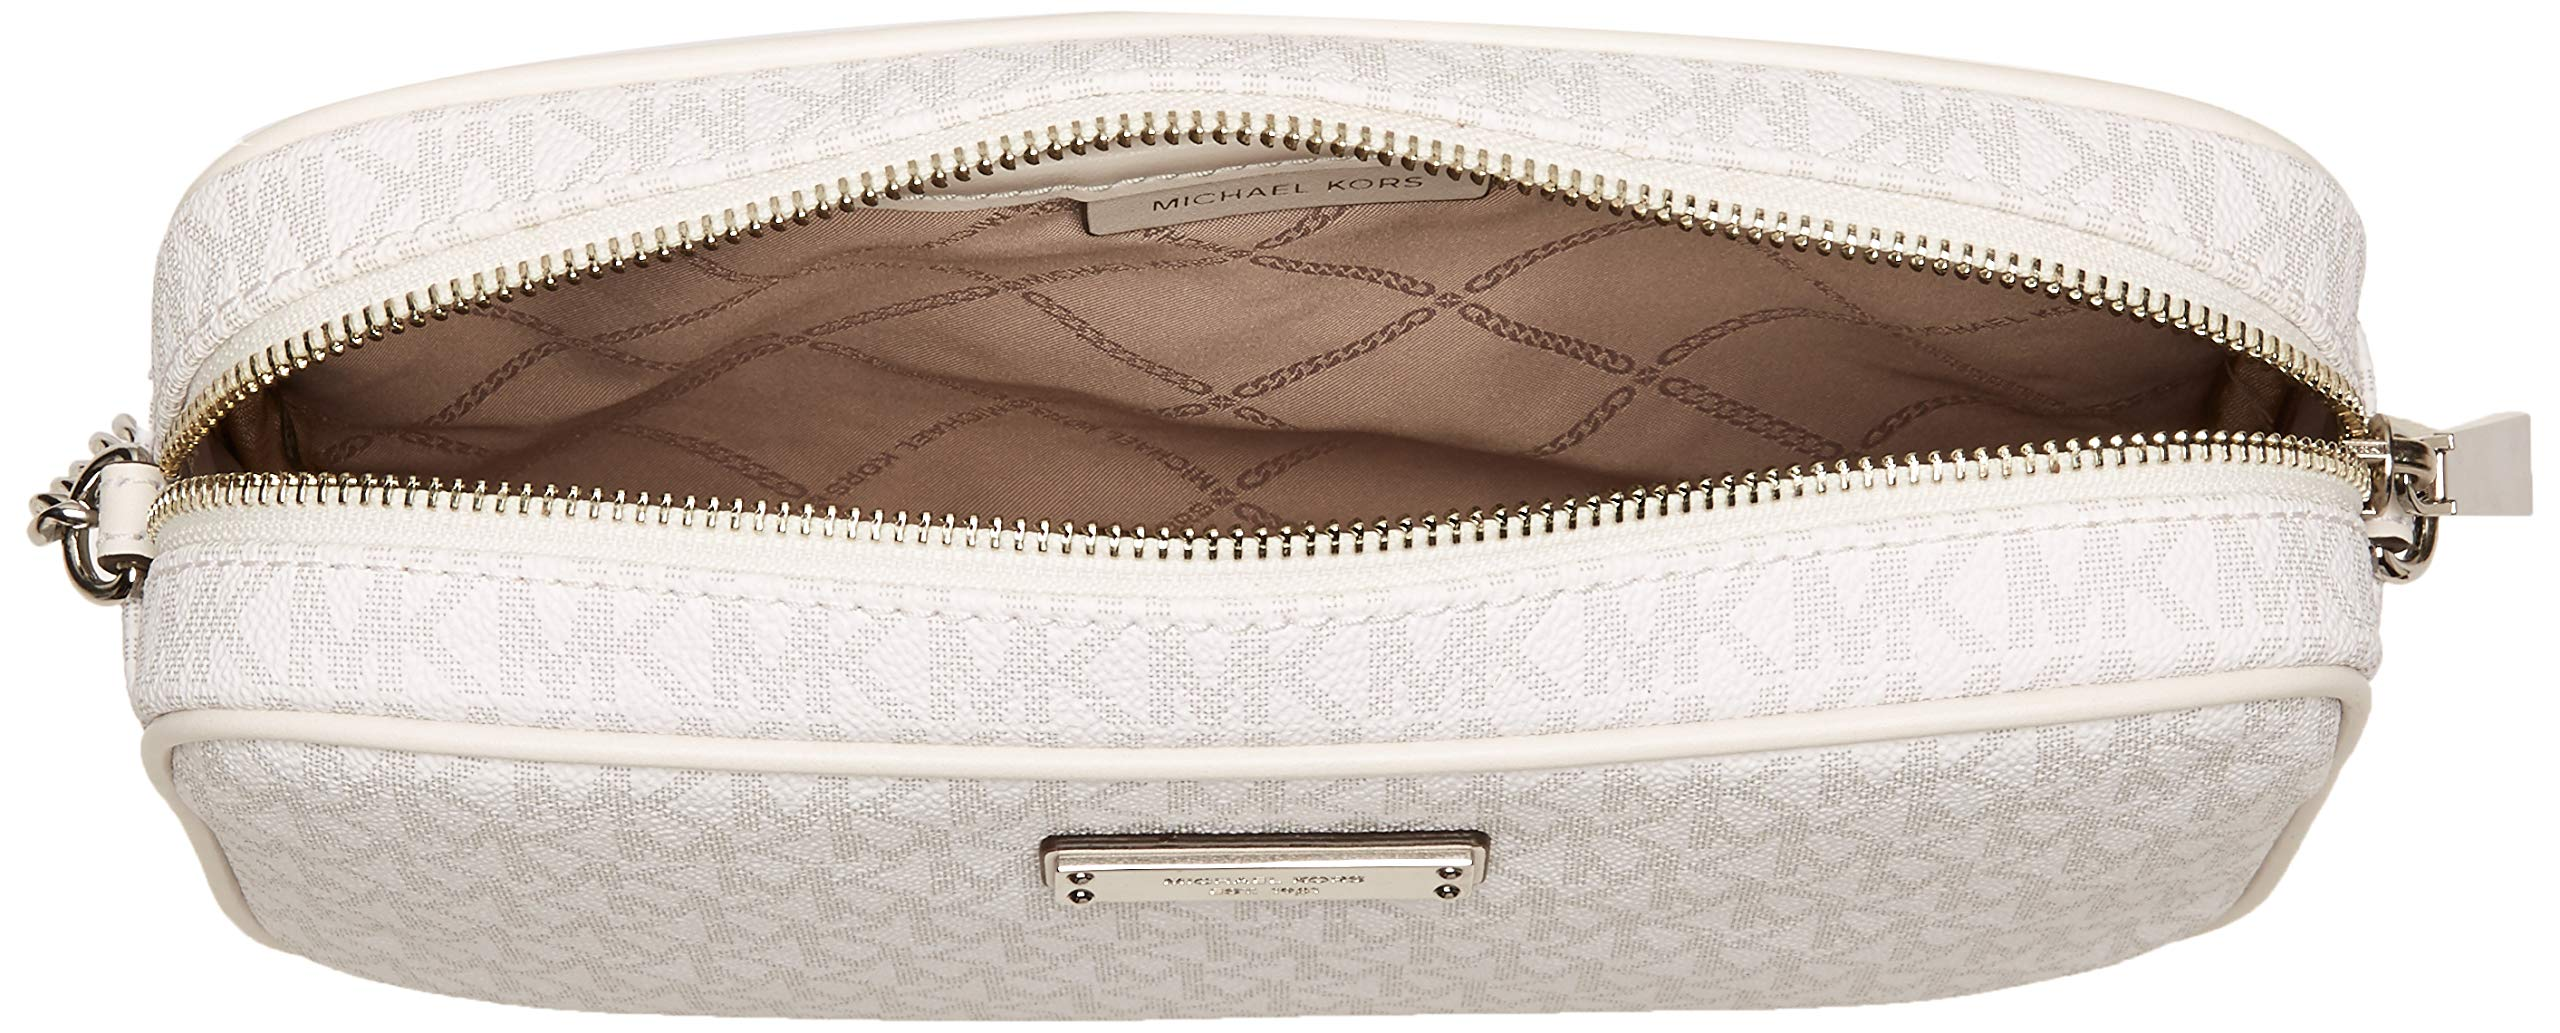 Michael Kors Signature Jet Set Item Large East West Crossbody BRIGHT WHITE